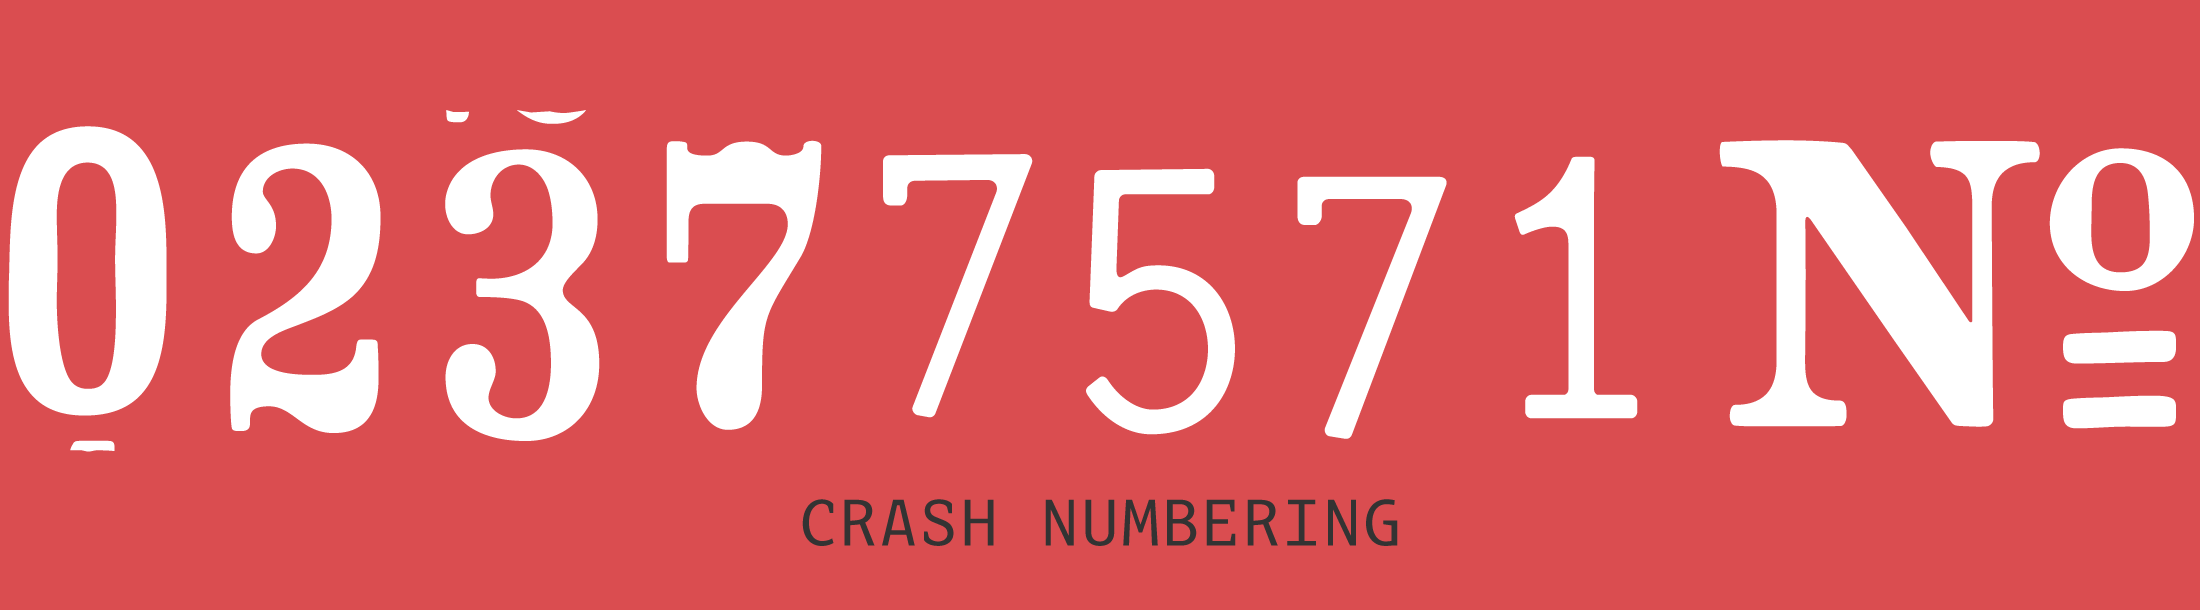 Crash Numbering Font